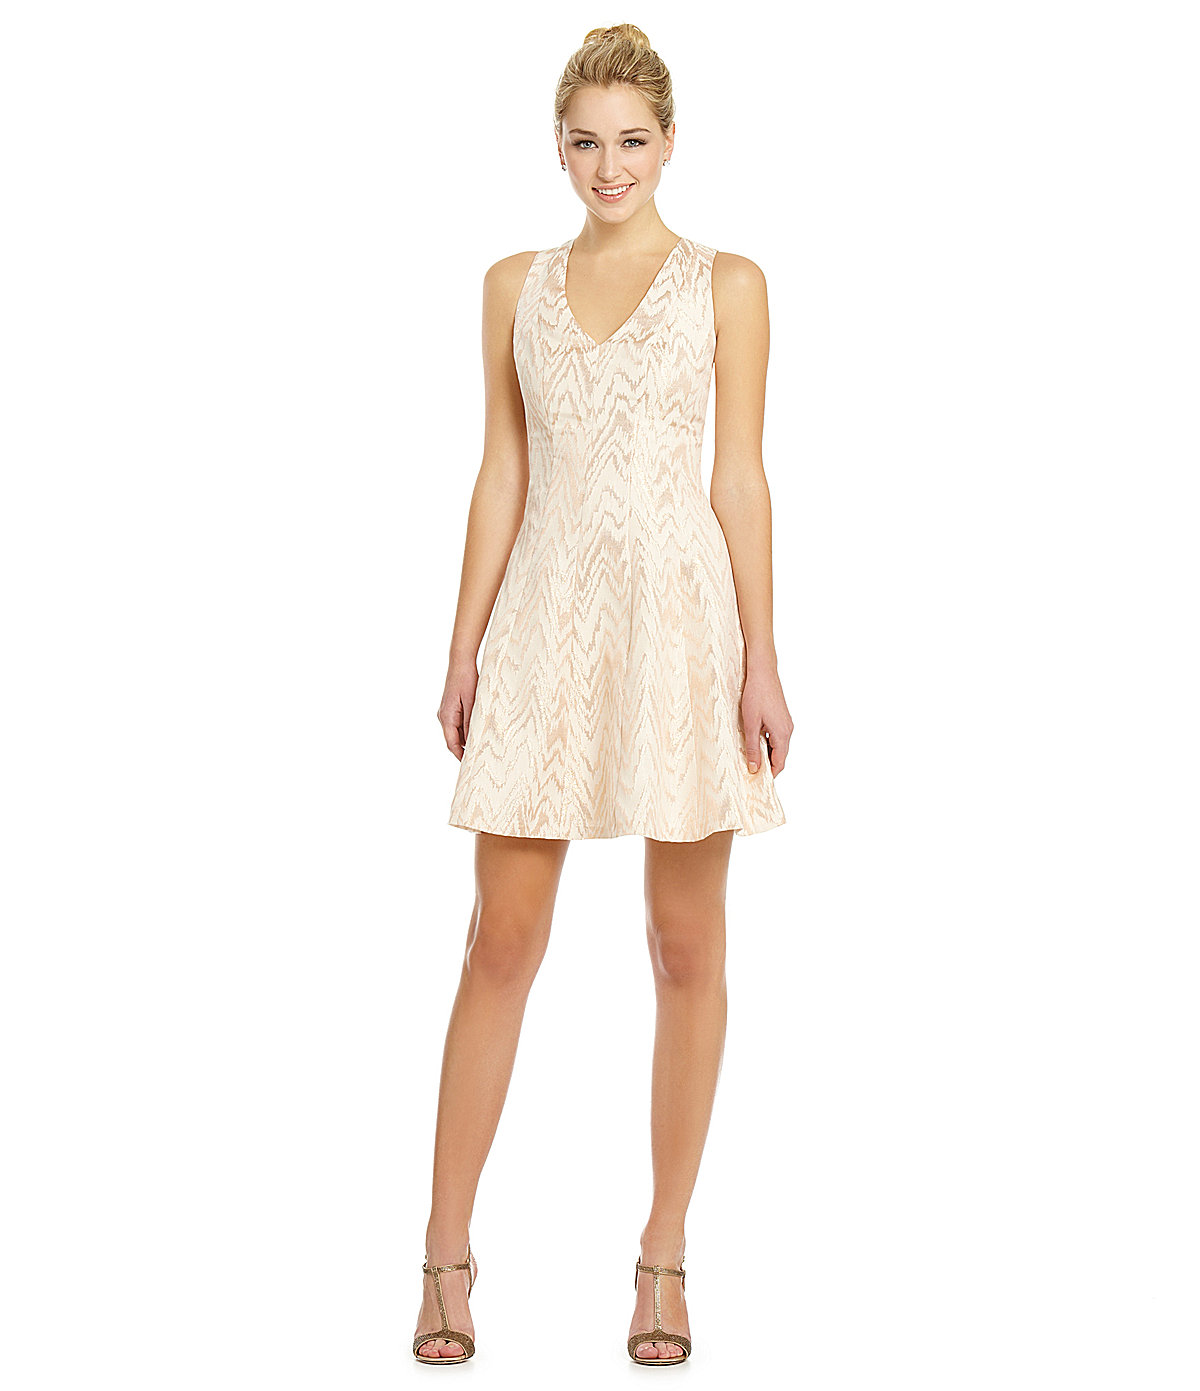 vince camuto chevron fit and flare dress from dillard s